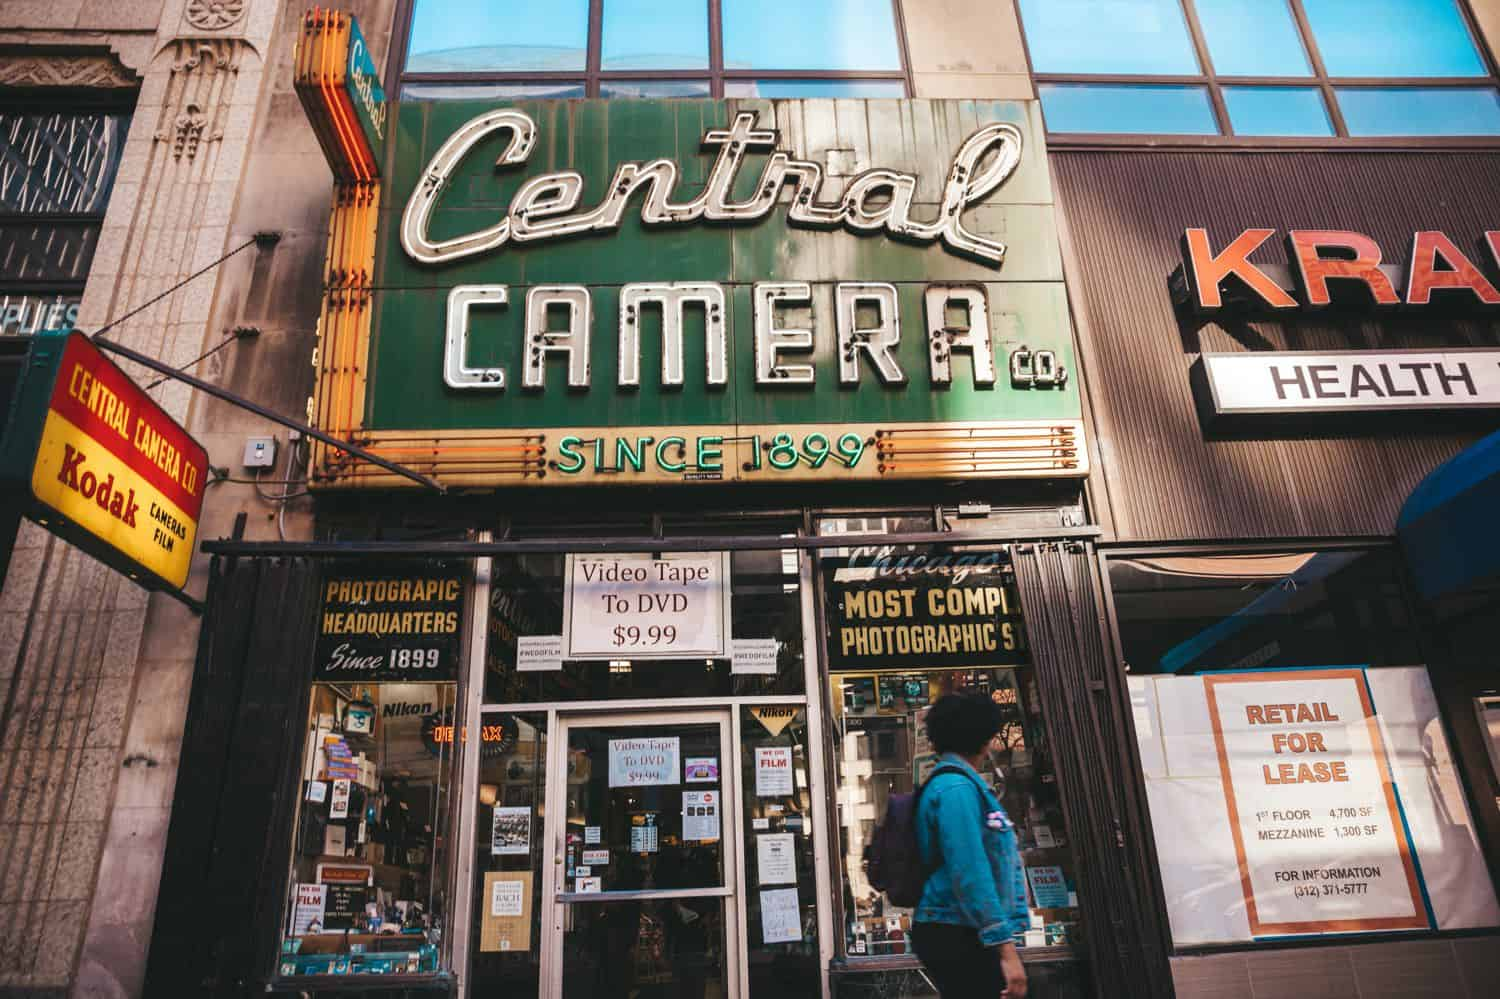 The Central Camera storefront is photographed with a person in a blue hoodie walking past.